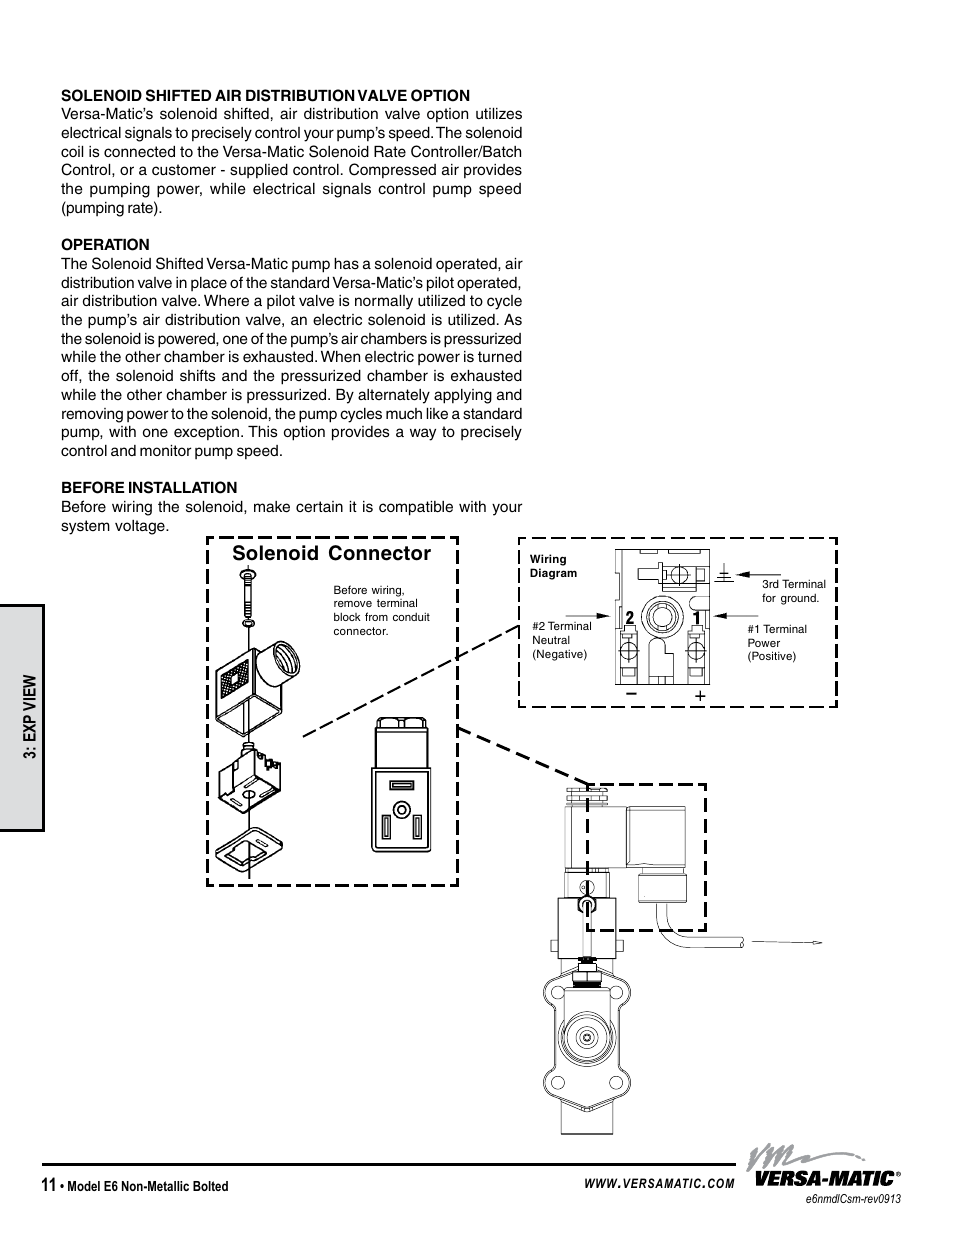 hight resolution of solenoid connector versa matic 1 4 elima matic bolted plastic e6 user manual page 14 15